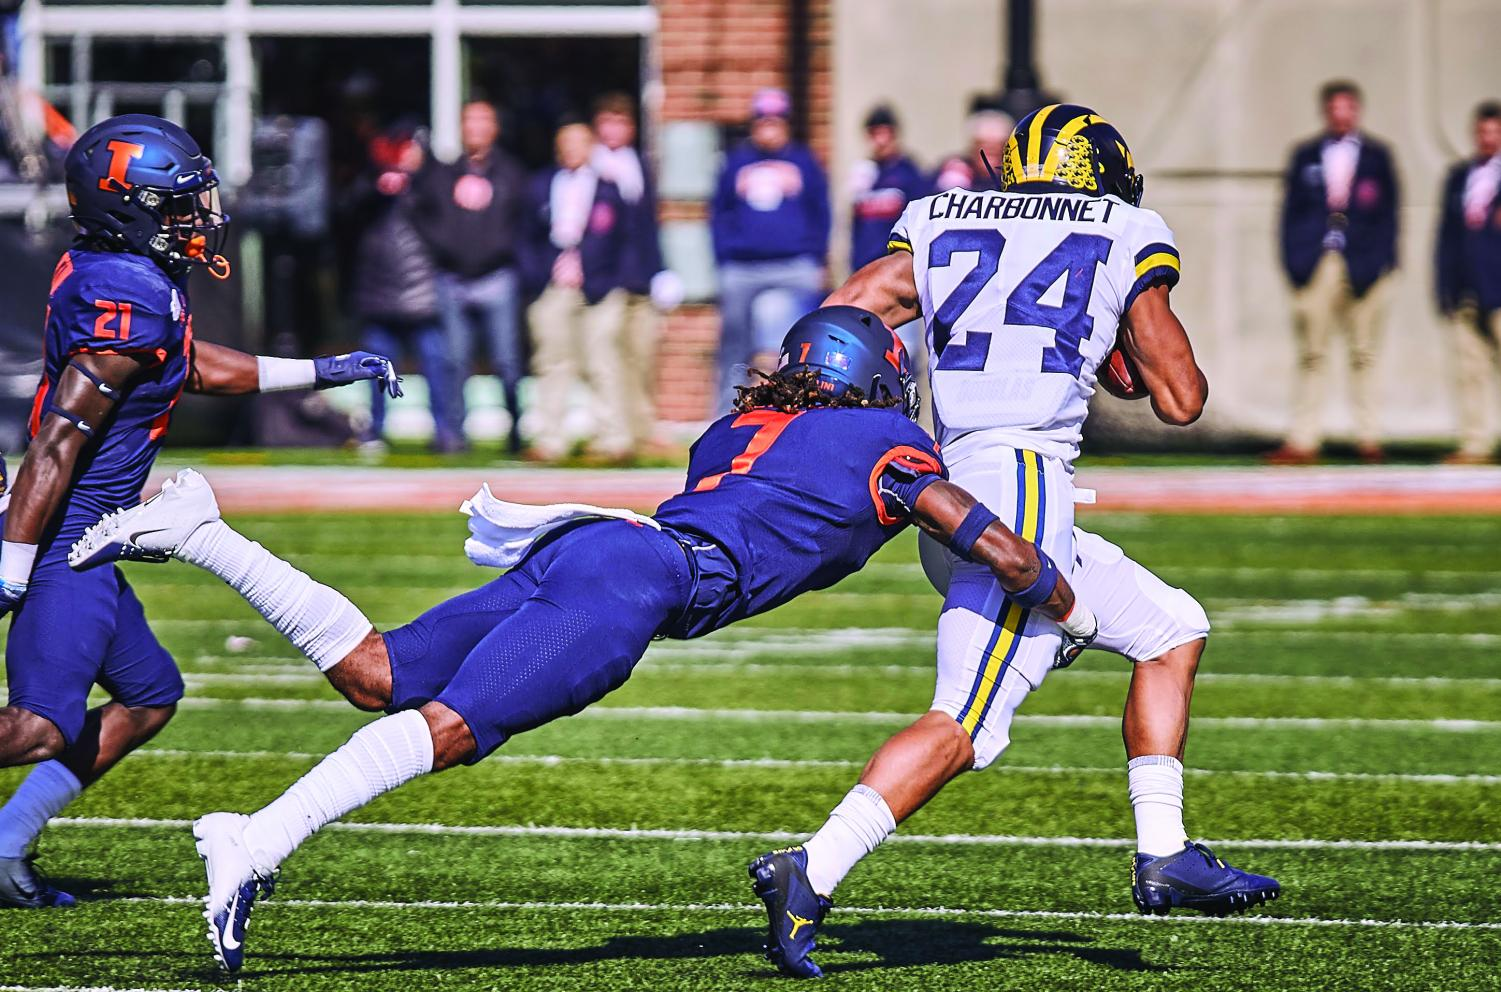 Defensive back Stan Green tackles a Michigan player at Memorial Stadium on Saturday. Despite injury, Green has become an asset to the team in his final season.